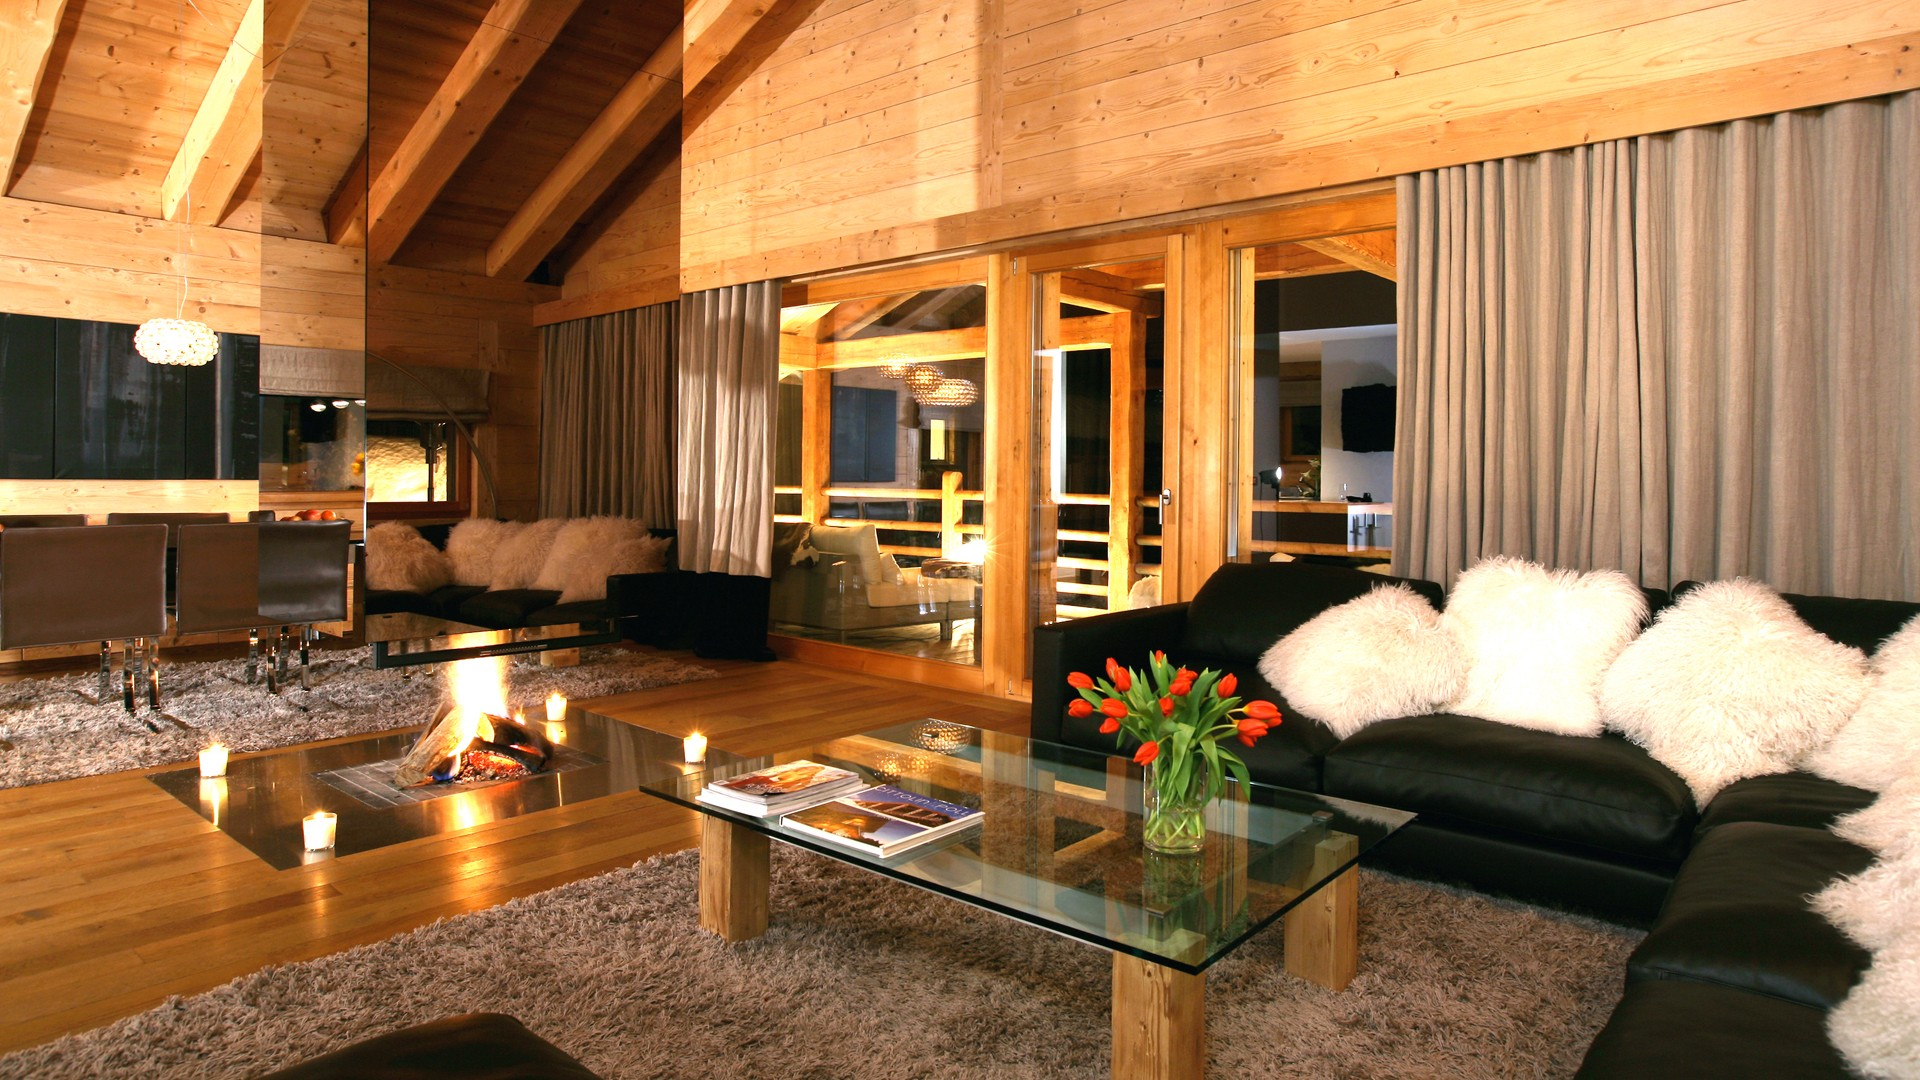 Magnificent Chalet, Verbier, Switzerland